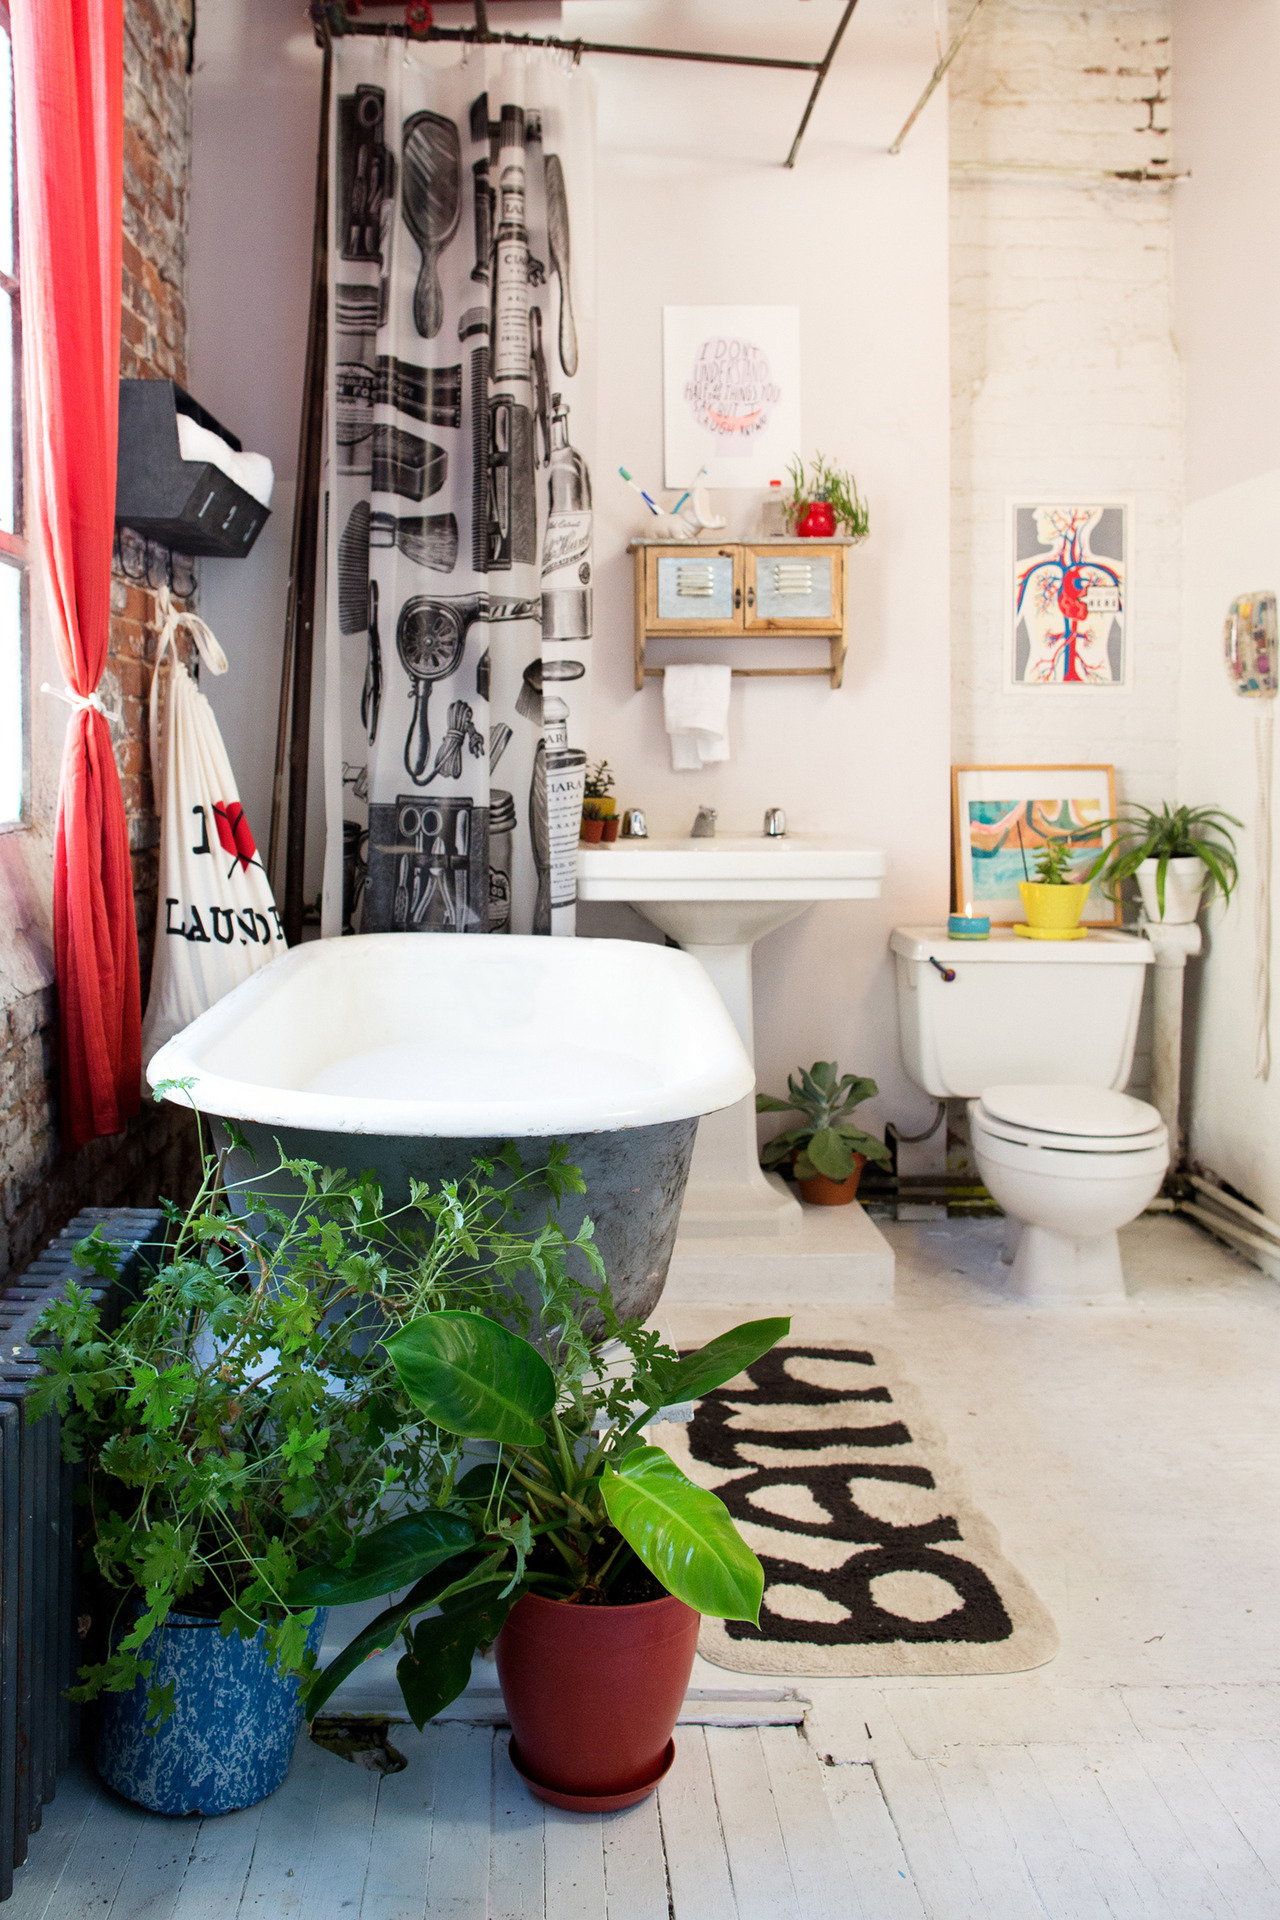 Uo home 2012 designtrolls for Urban bathroom ideas